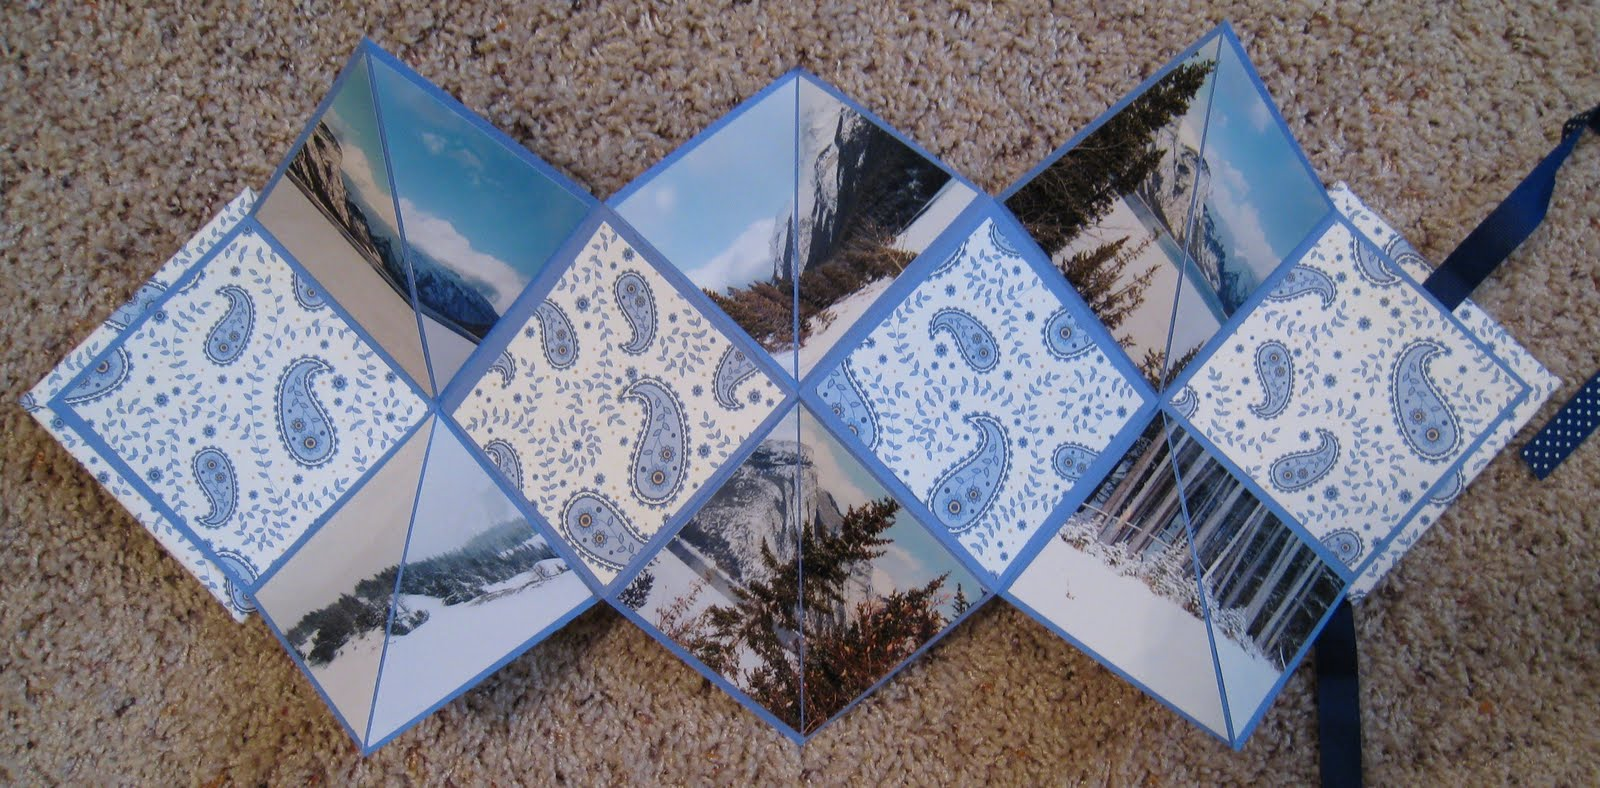 Daily life bits pieces canadian rockies origami mini album completed a quick and easy mini album today using another origami album that my younger sister made this one highlights some of the beautiful scenery solutioingenieria Gallery